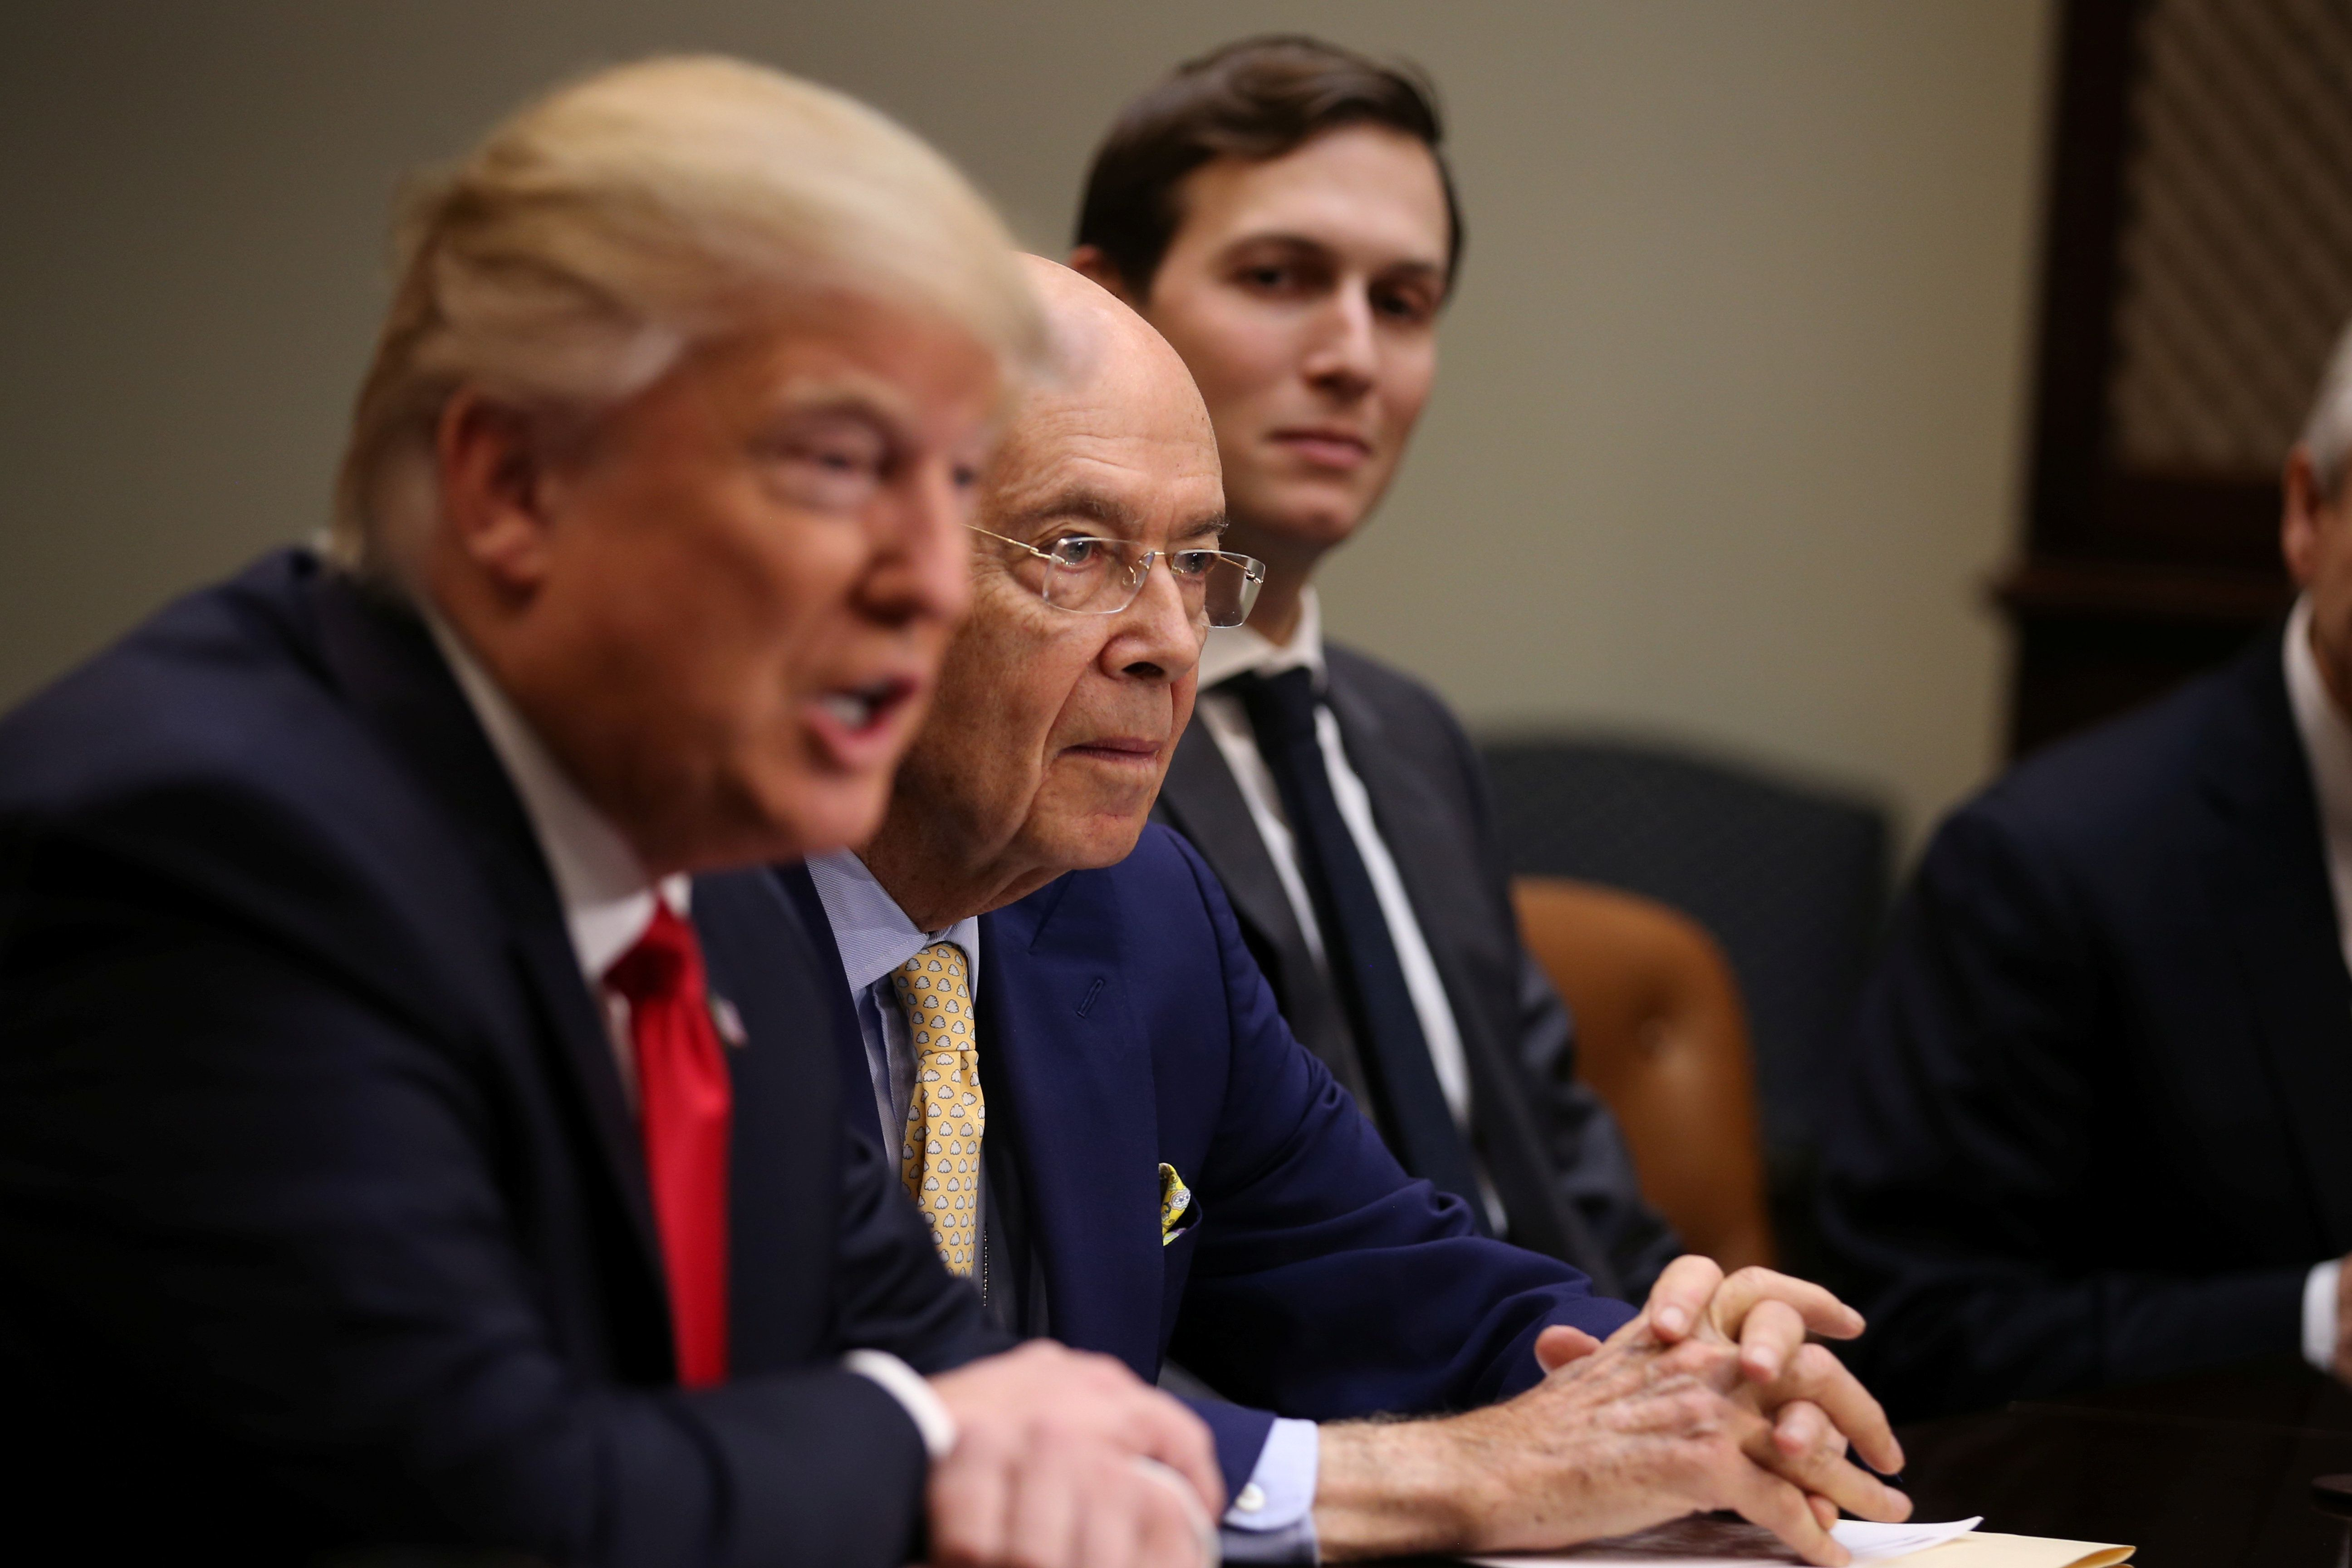 Wilbur Ross, Trump's pick for Commerce Secretary (C), U.S. President Donald Trump and Senior advisor and Trump's son-in-law Jared Kushner (R) attend a meeting with congressional leaders to discuss trade deals at the at the Roosevelt room of the White House in Washington U.S., February 2, 2017. REUTERS/Carlos Barria